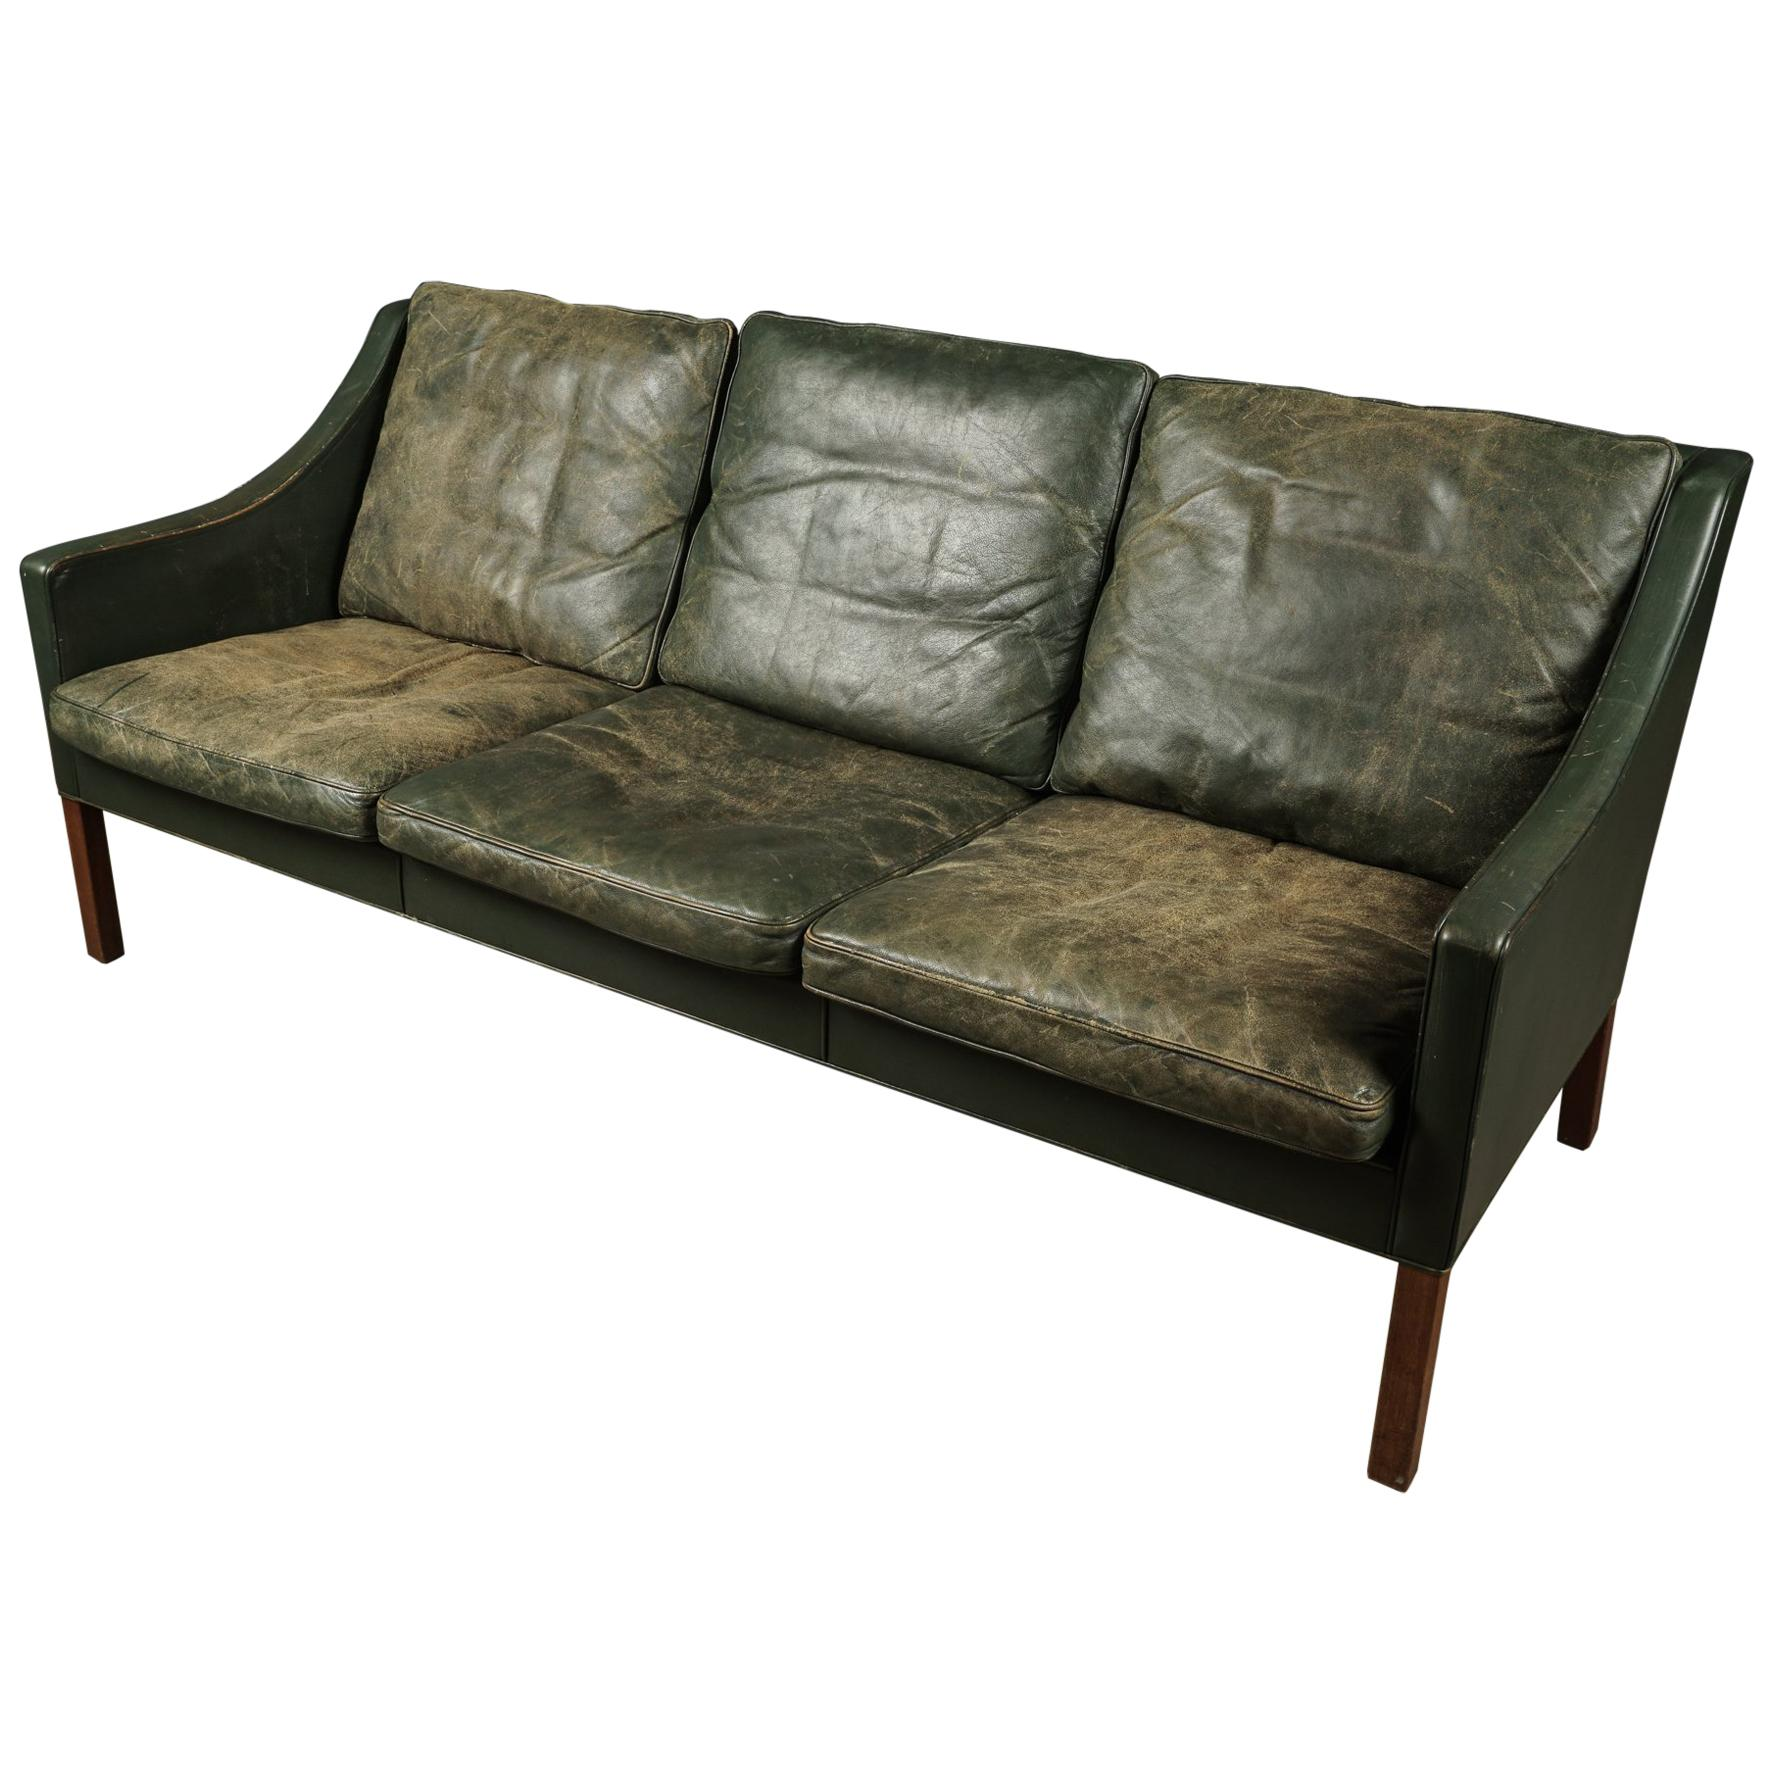 borge mogensen sofa model 2209 good quality bed canada three seat designed by for sale at